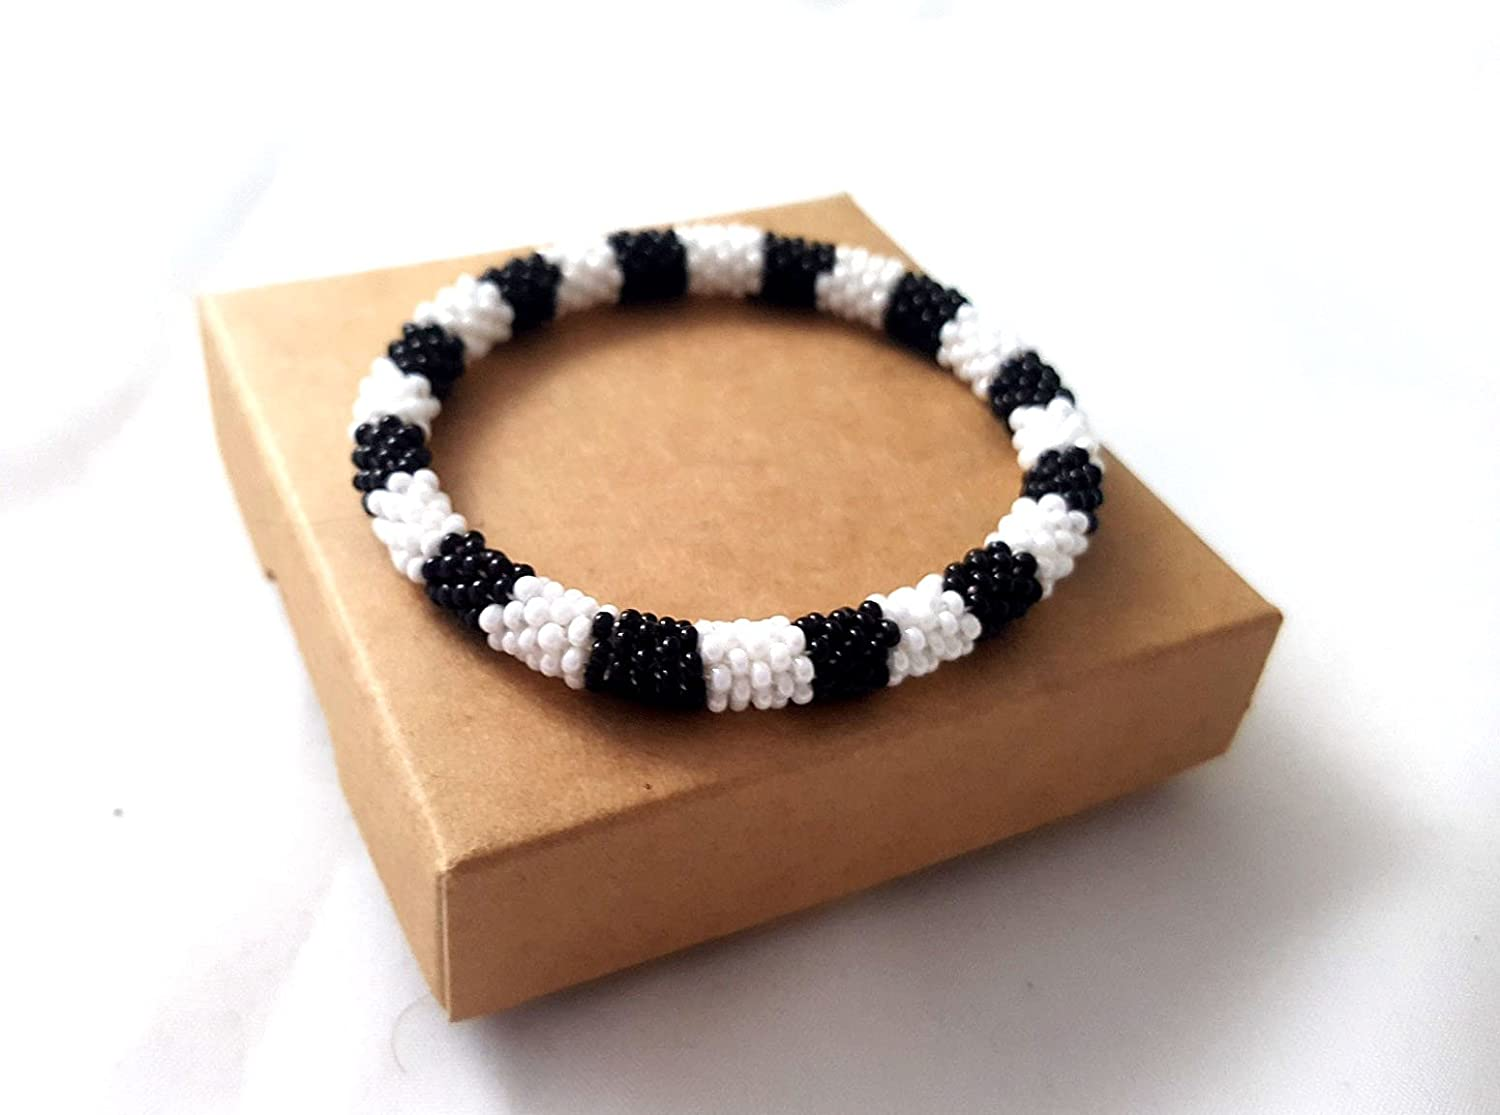 White Black Roll On Bracelet Nepal Native Bangle Beaded Wristband